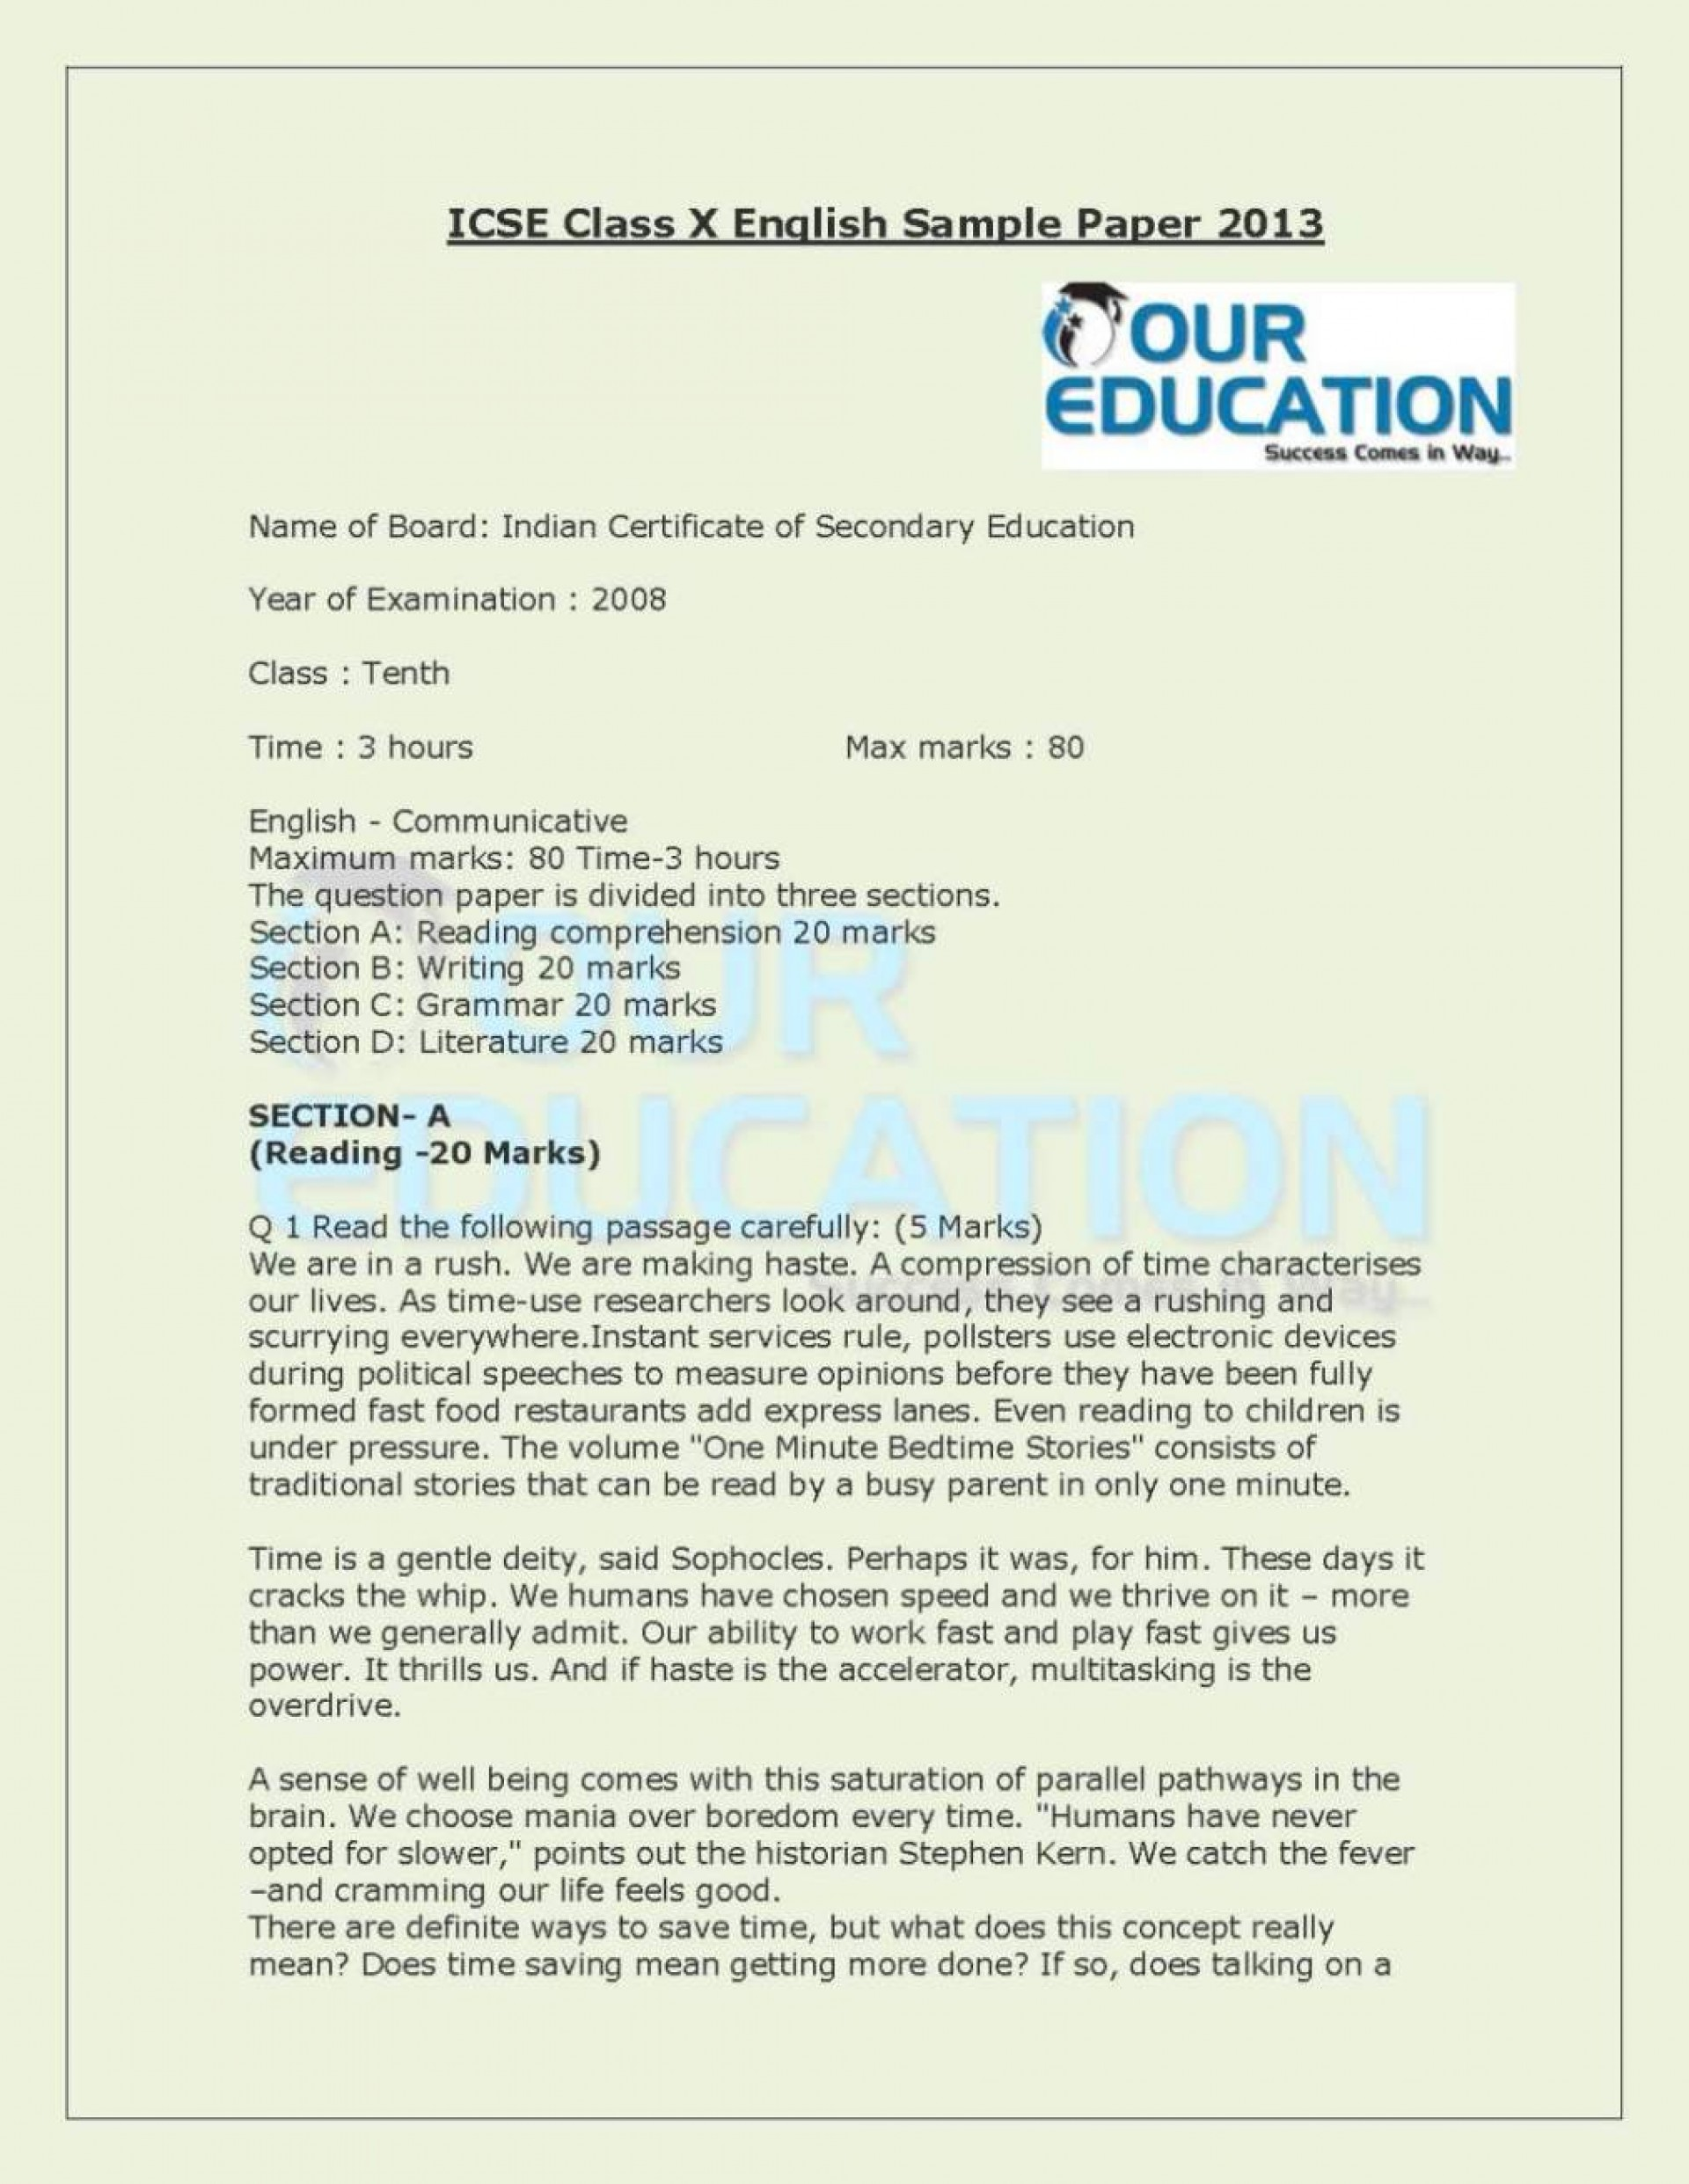 006 Teen Pregnancy Essay Icse 10th English Question Papers Amazing Teenage Pdf Body Introduction In The Philippines 1920